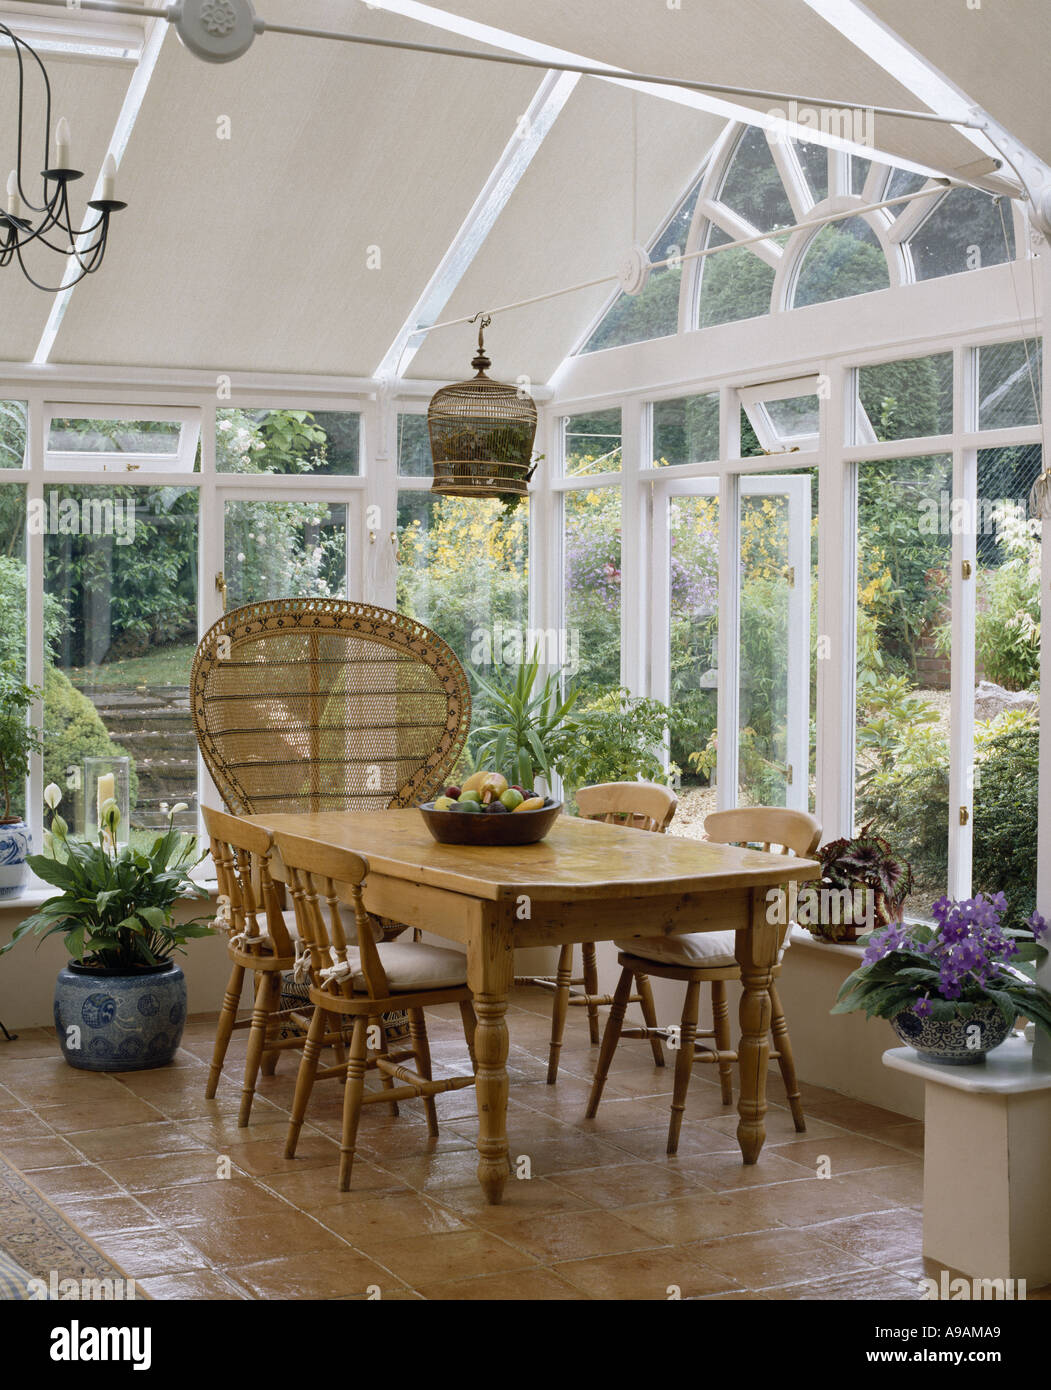 Old Pine Table And Chairs With Rattan Peacock Chair In Light And